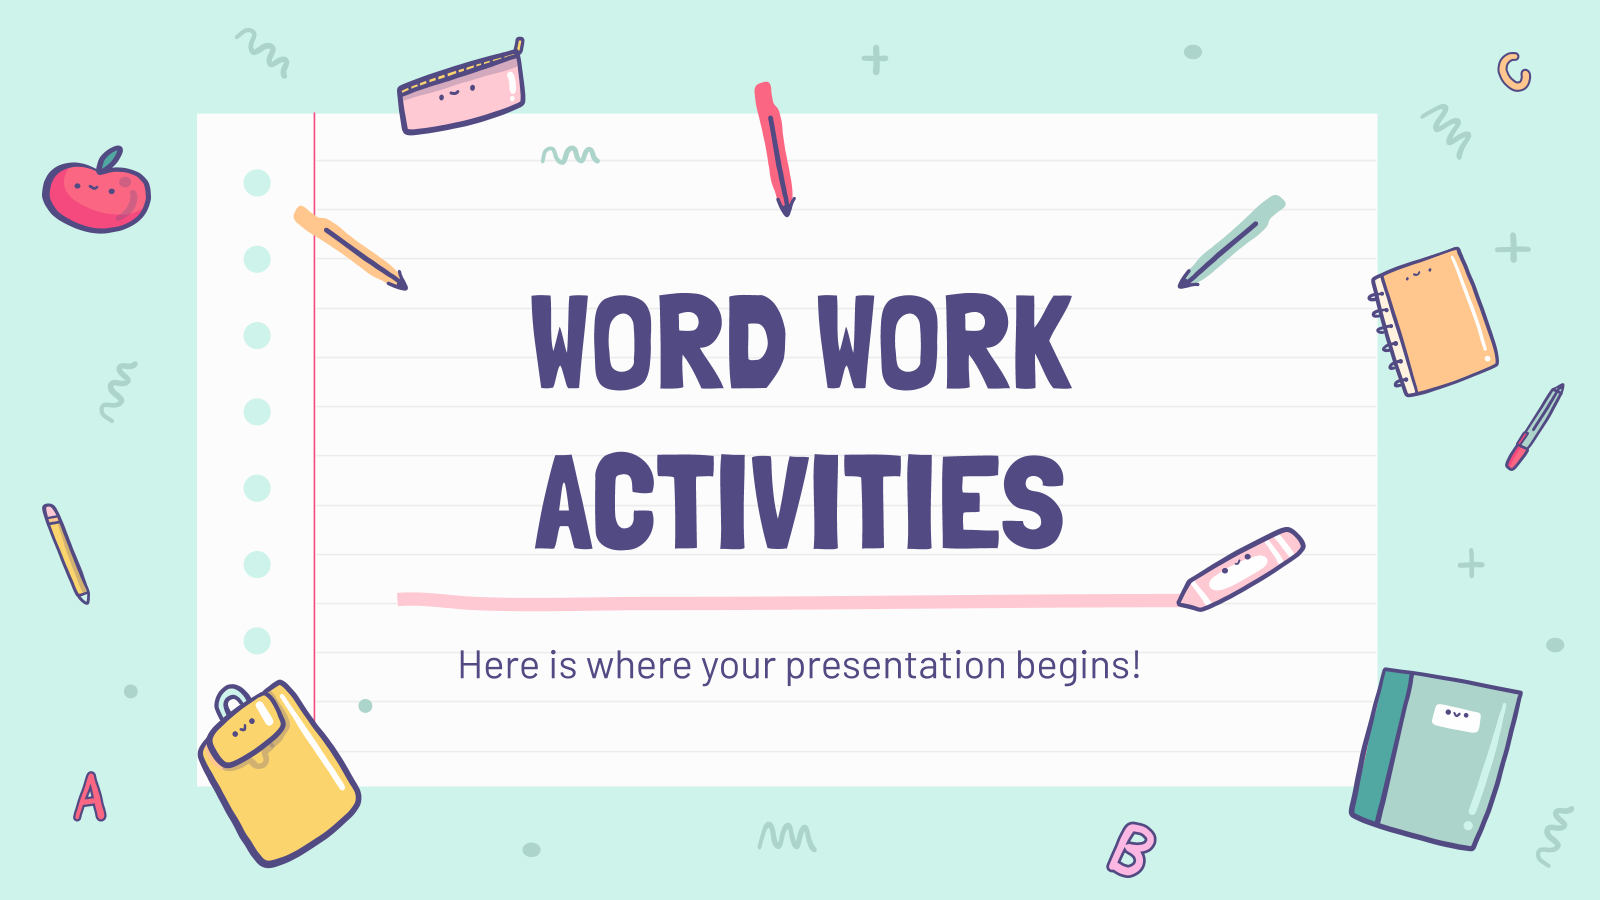 Word Work Activities presentation template